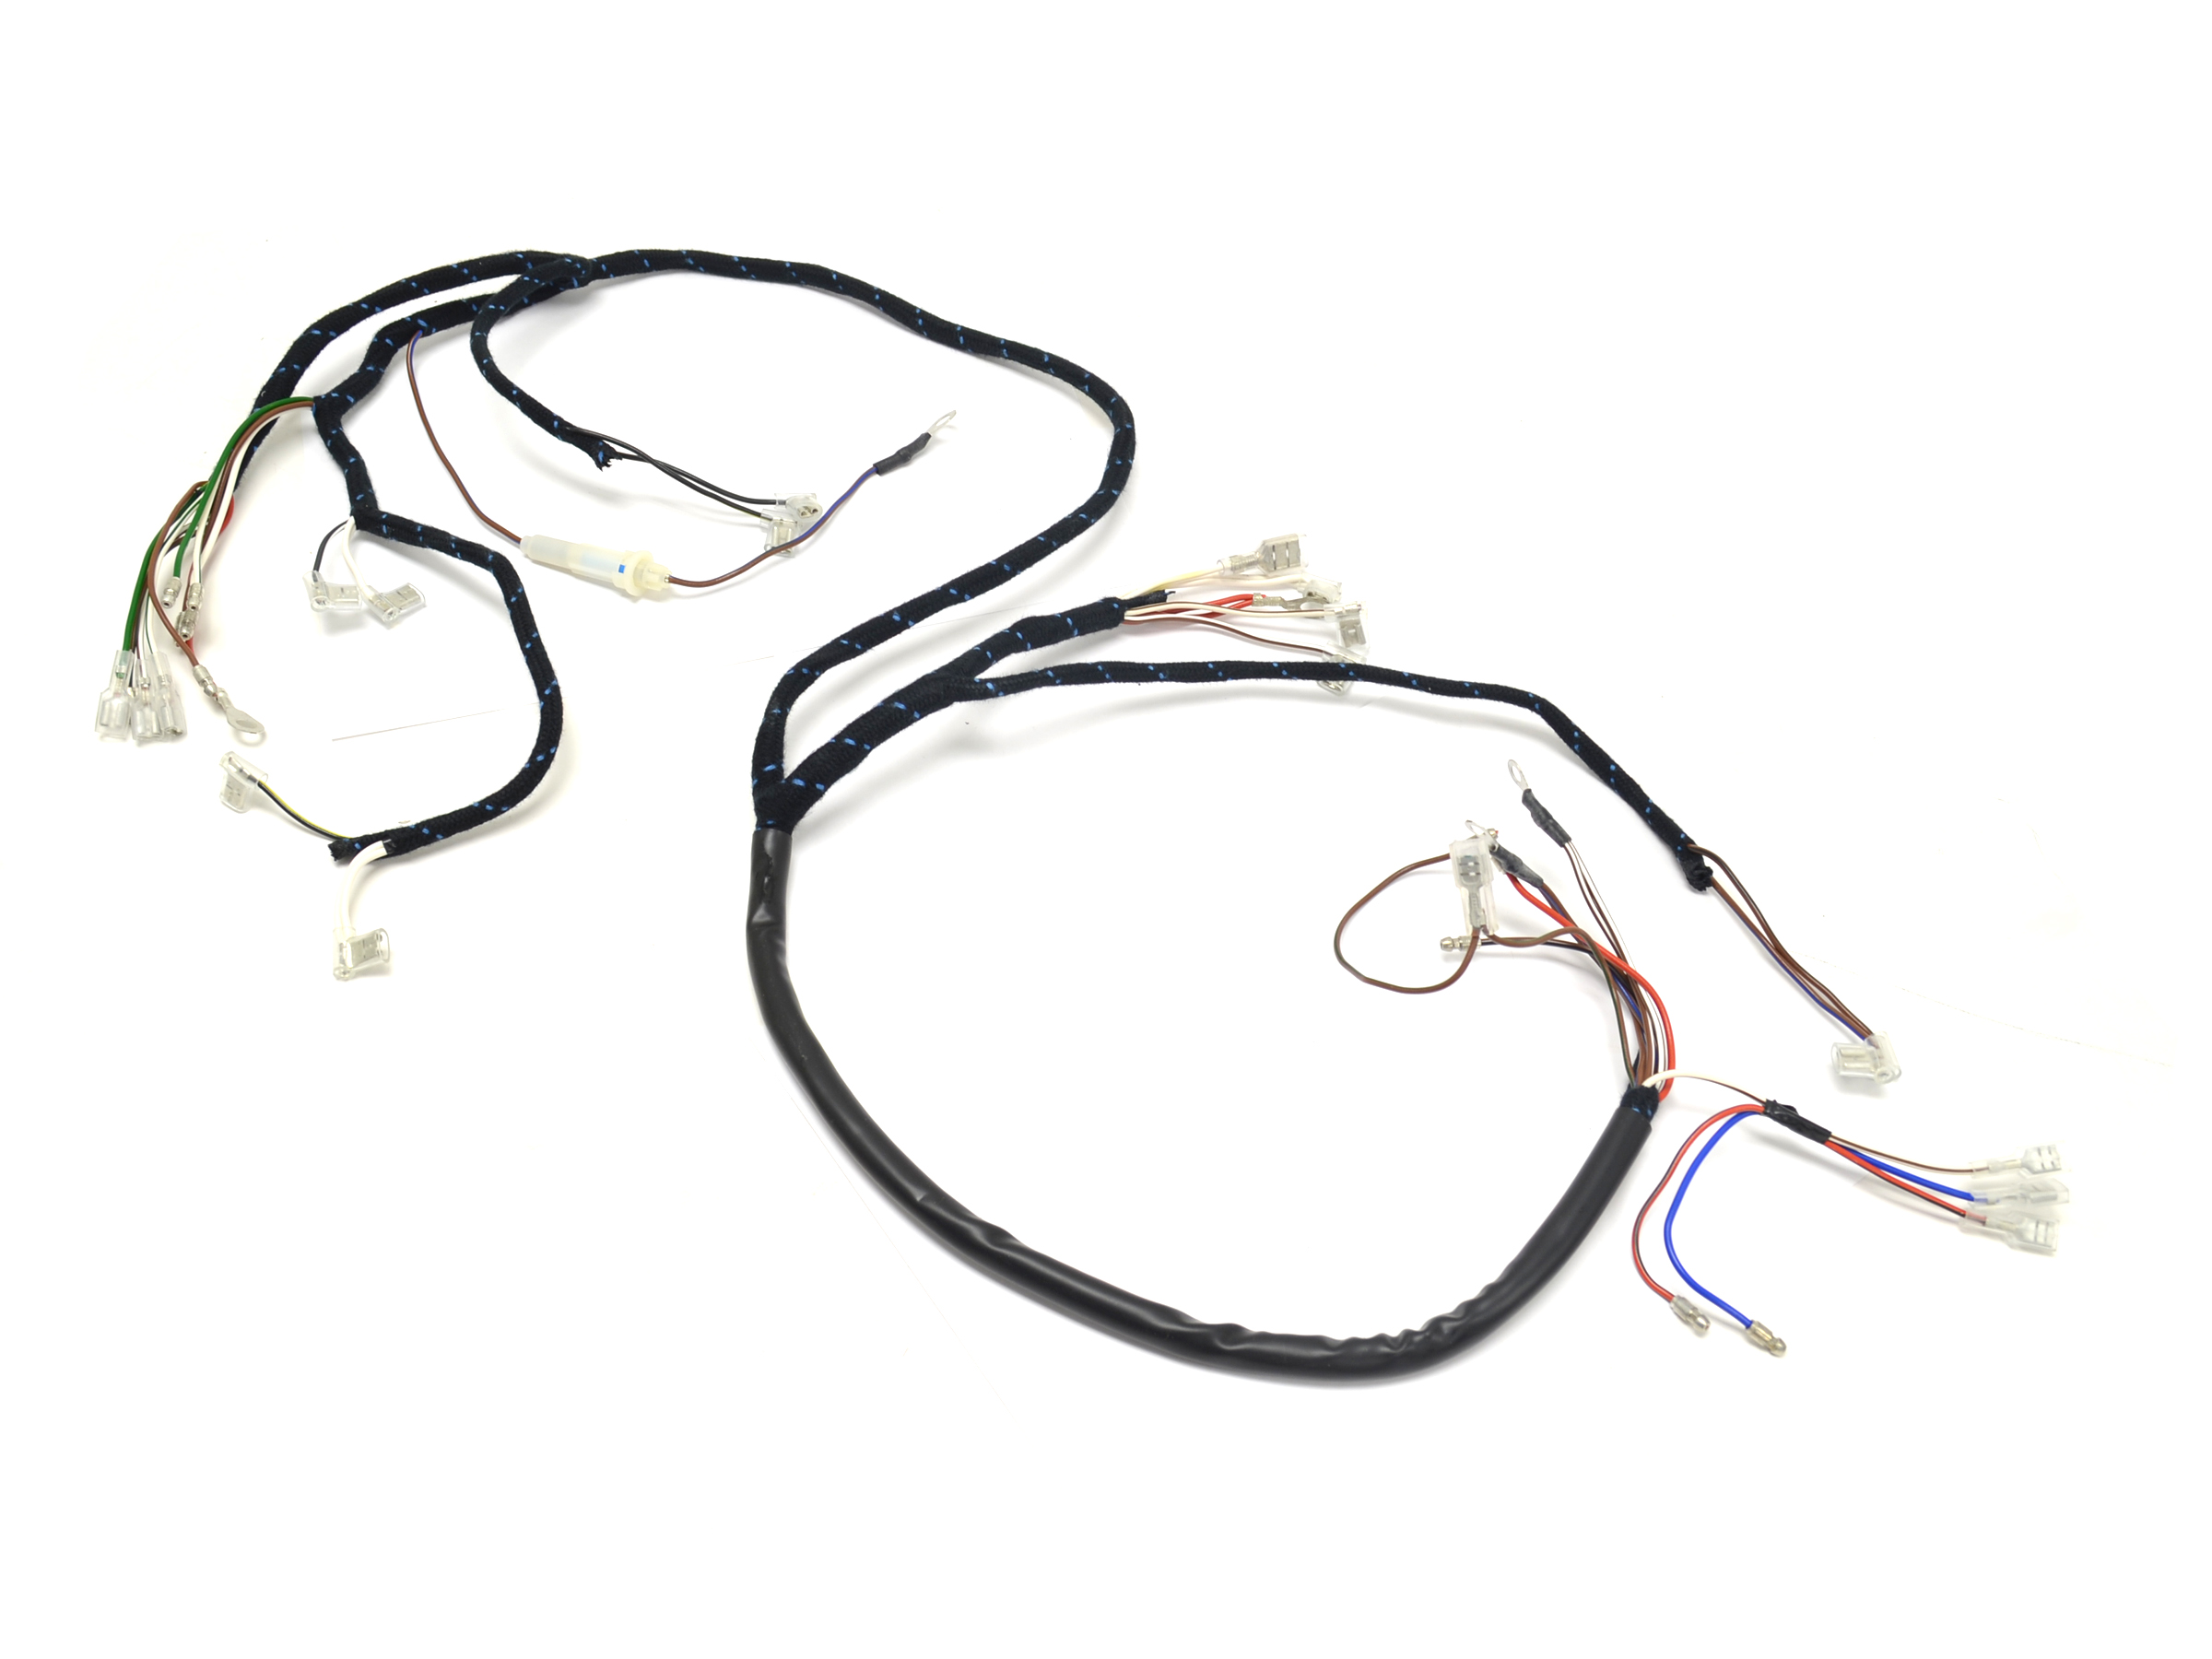 12 Volt Wiring Harness